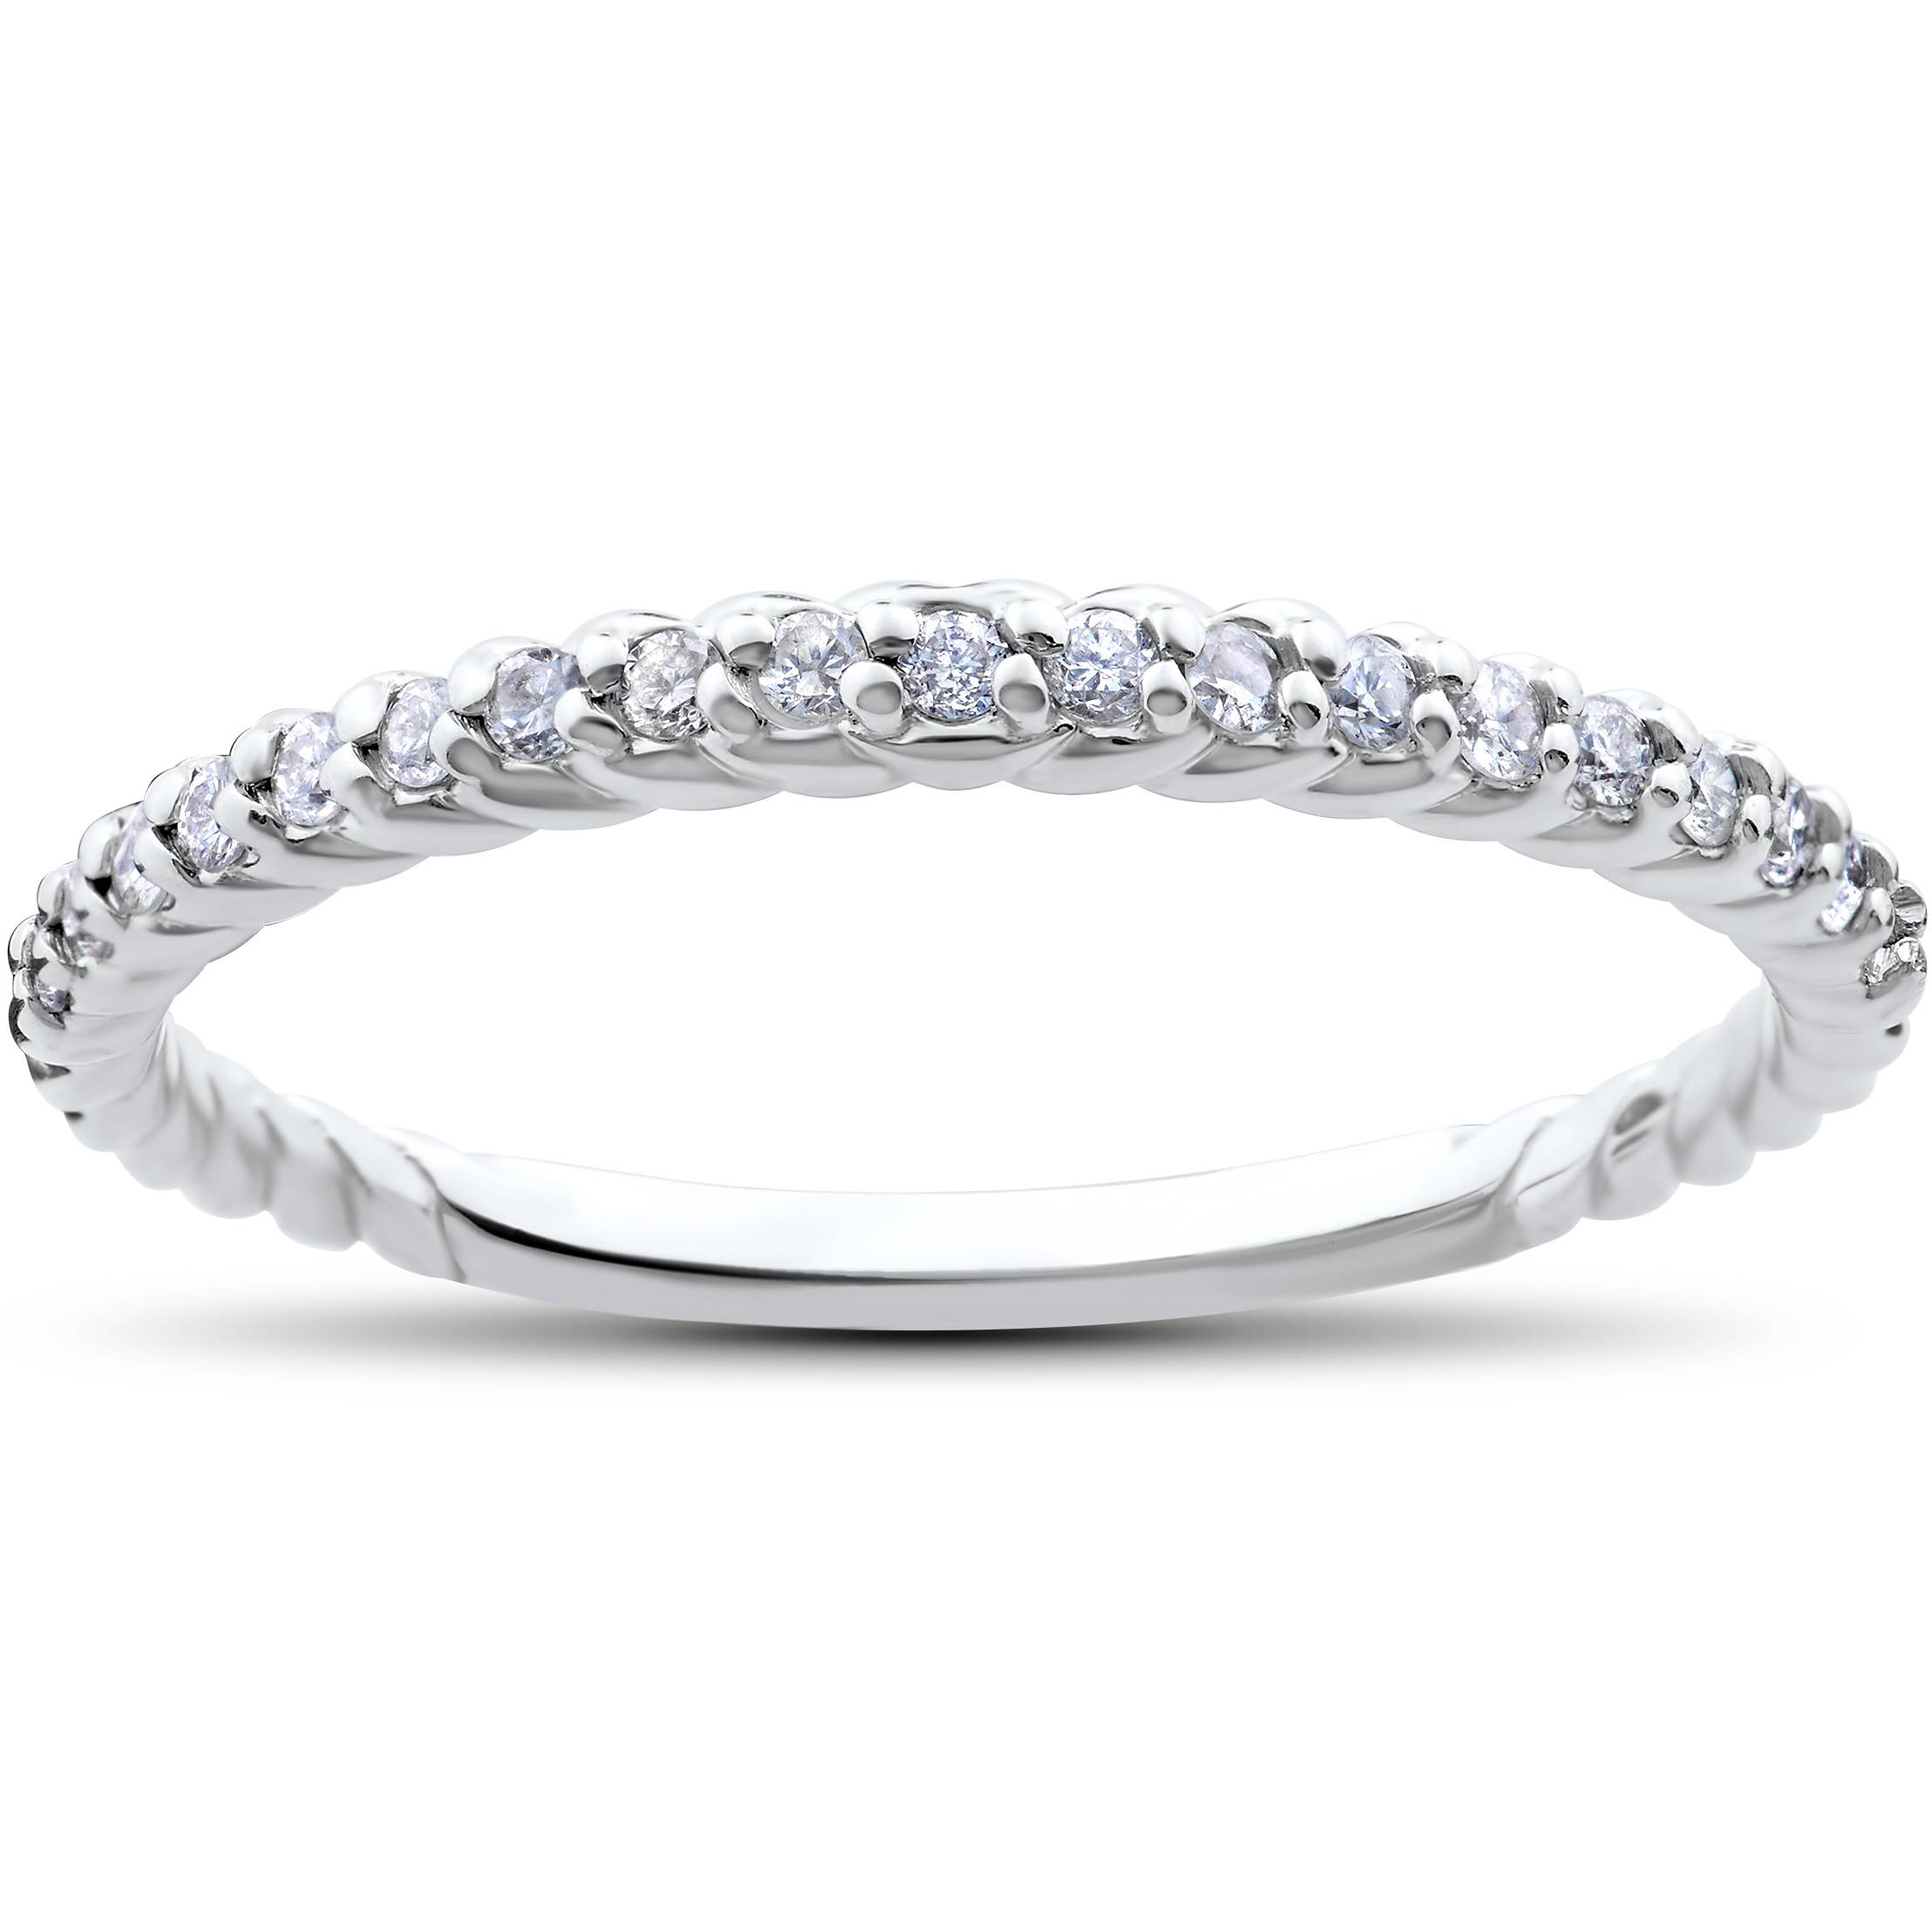 Stackable Diamond Wedding Ring 1/4Ct Braided Anniversary Band 14K White Gold Intended For Most Popular Diamond Braid Anniversary Bands In White Gold (Gallery 3 of 25)